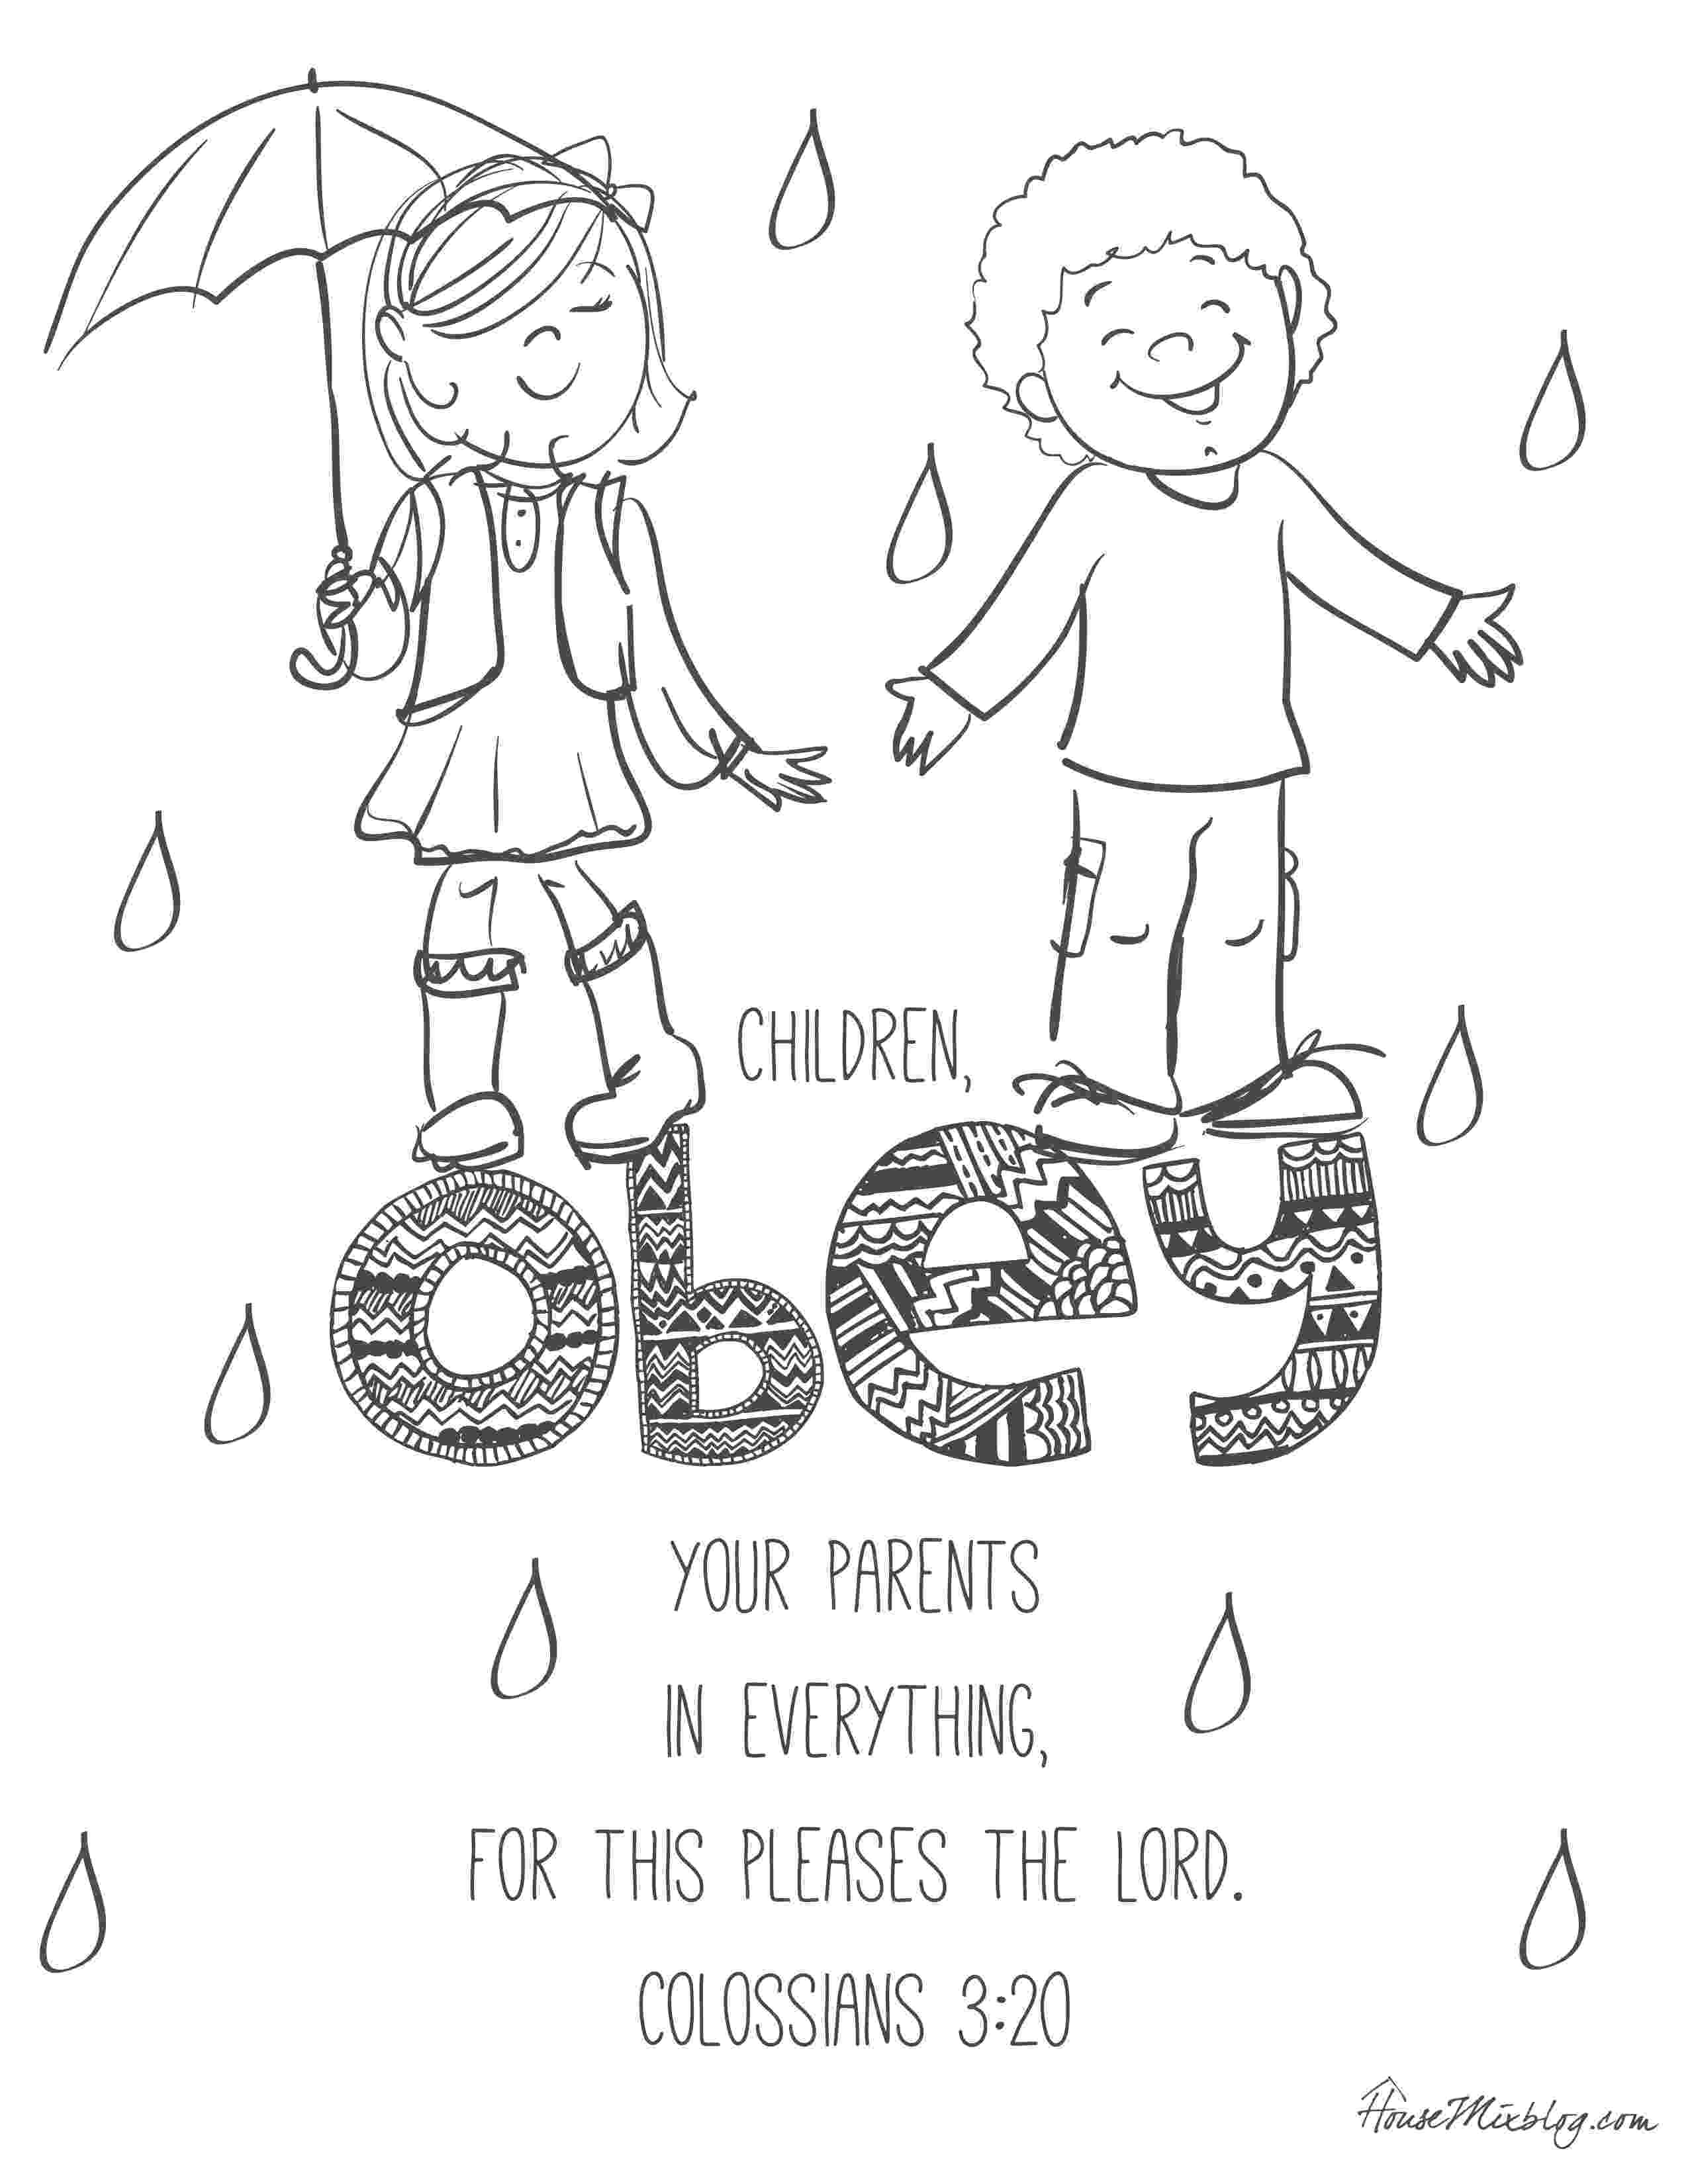 bible coloring pages for kids coloring town for bible coloring kids pages